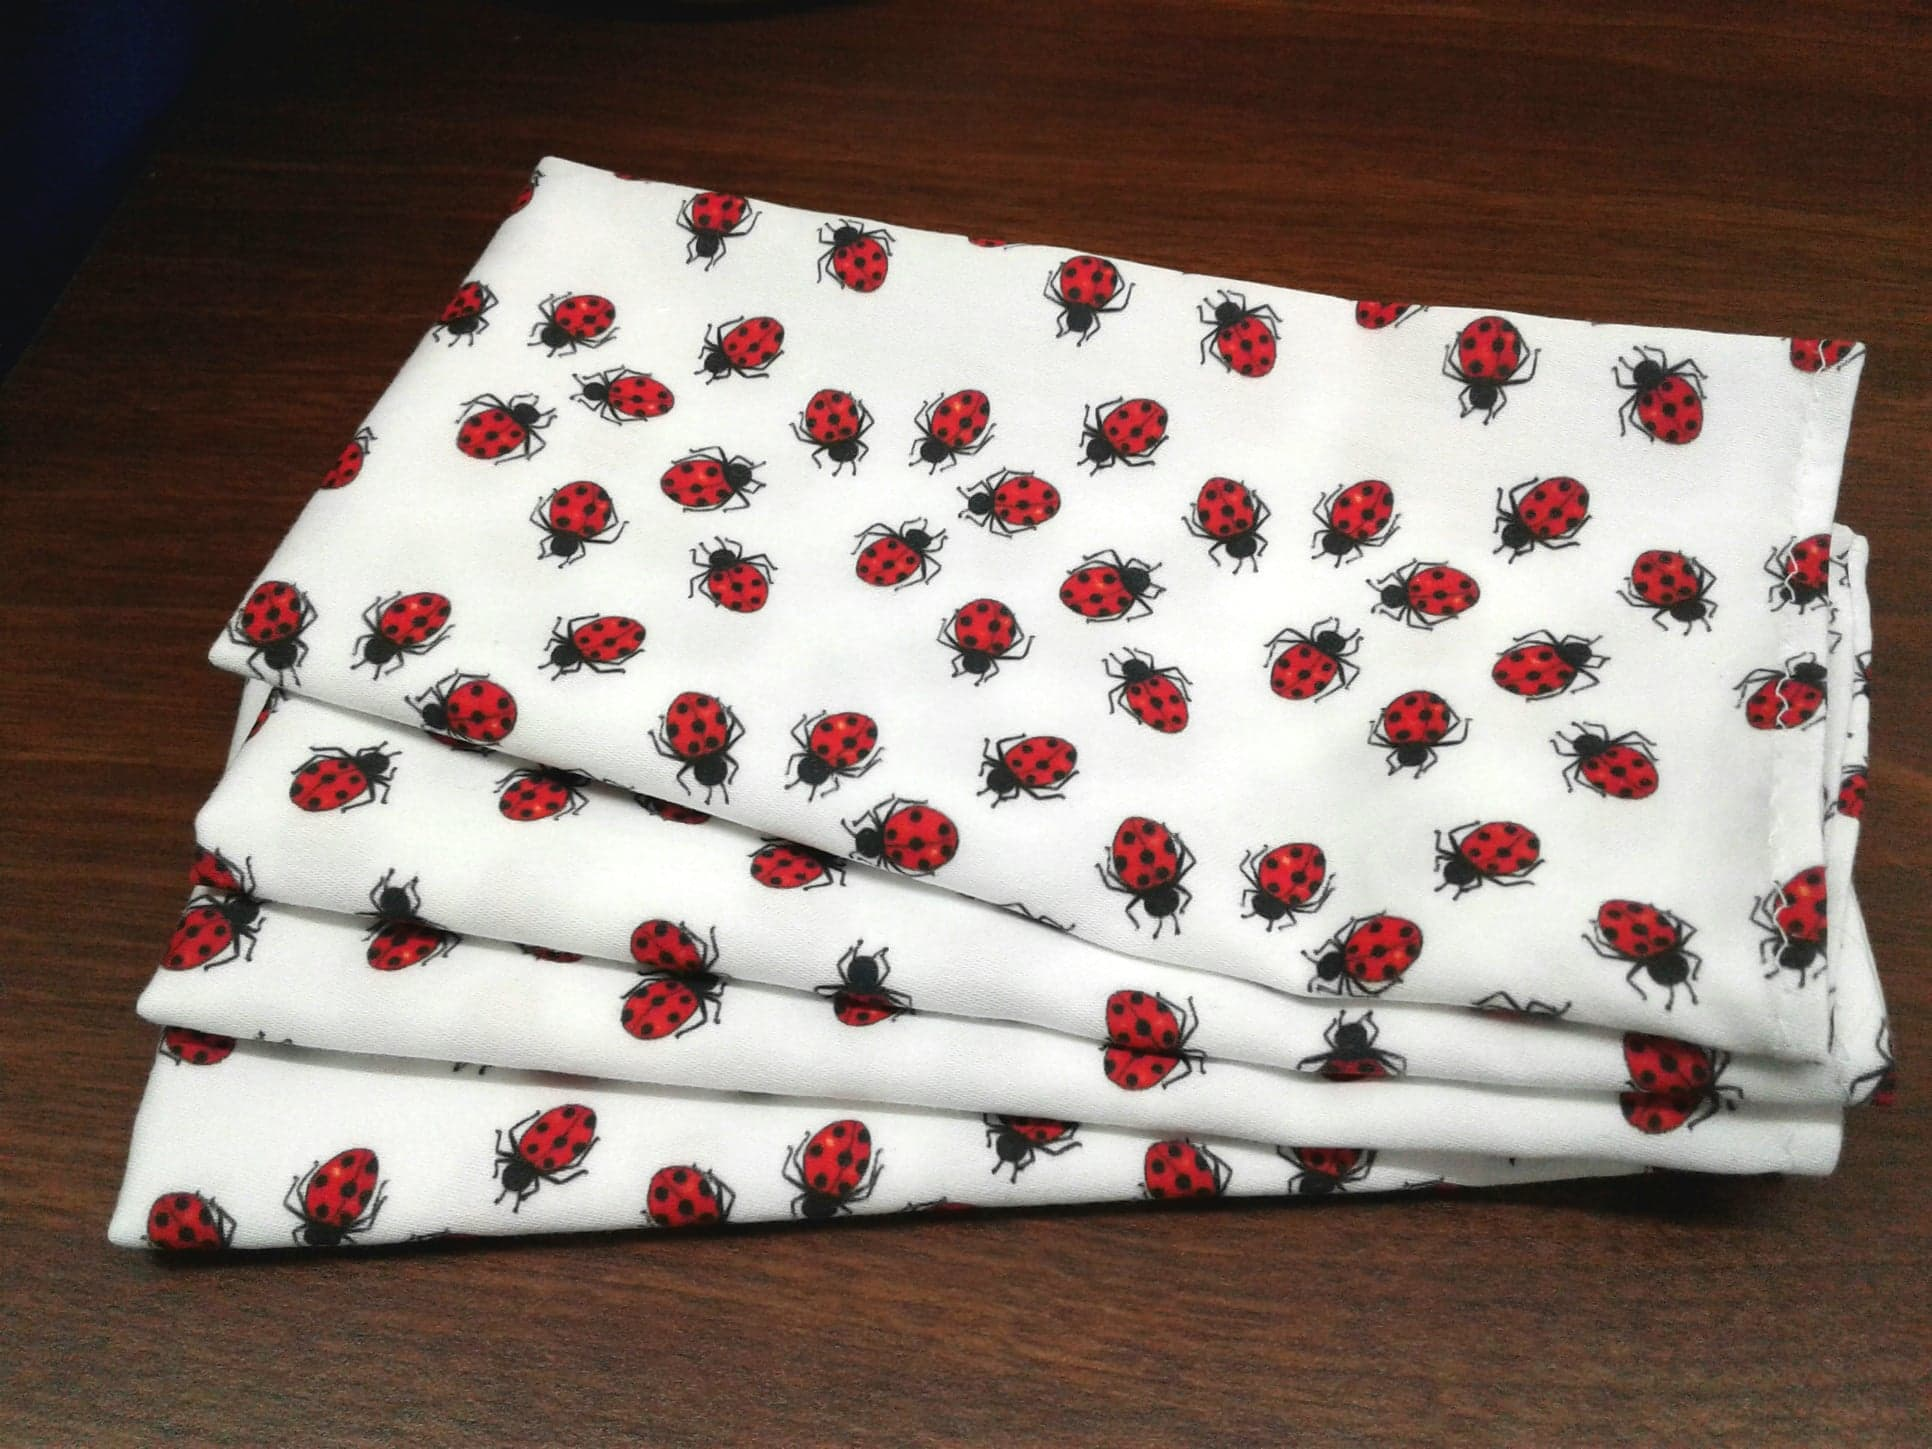 - Red Spotted Ladybugs by hannamccown Insects Bug  Ladybug Garden Summer Cloth Napkins by Spoonflower Nature Dinner Napkins Set of 2